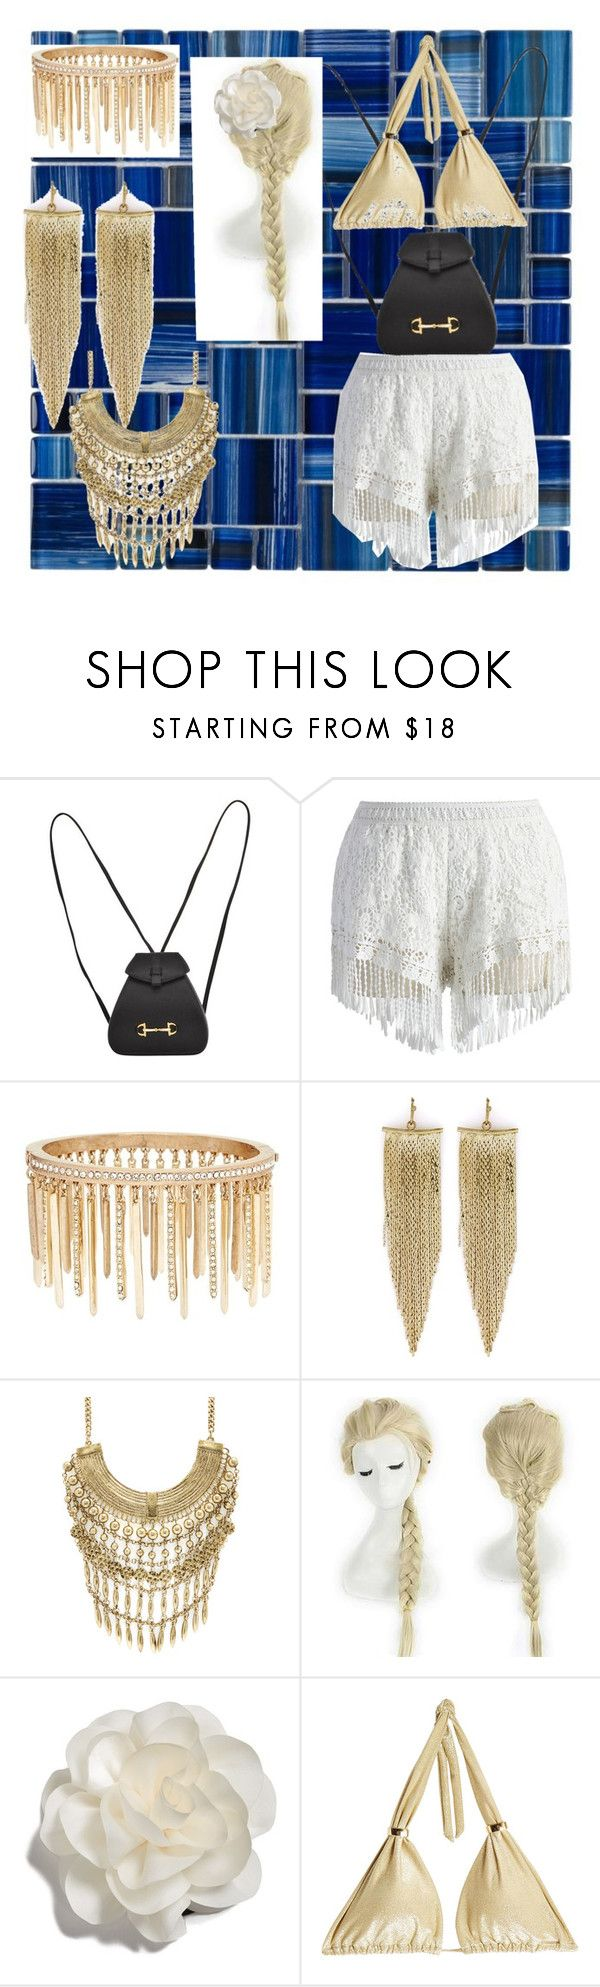 """""""Golden Hippie"""" by nini-pie ❤ liked on Polyvore featuring Gucci, Chicwish, Jenny Packham, Kenneth Jay Lane, Marabelle, Clair Beauty, Cara and OndadeMar"""